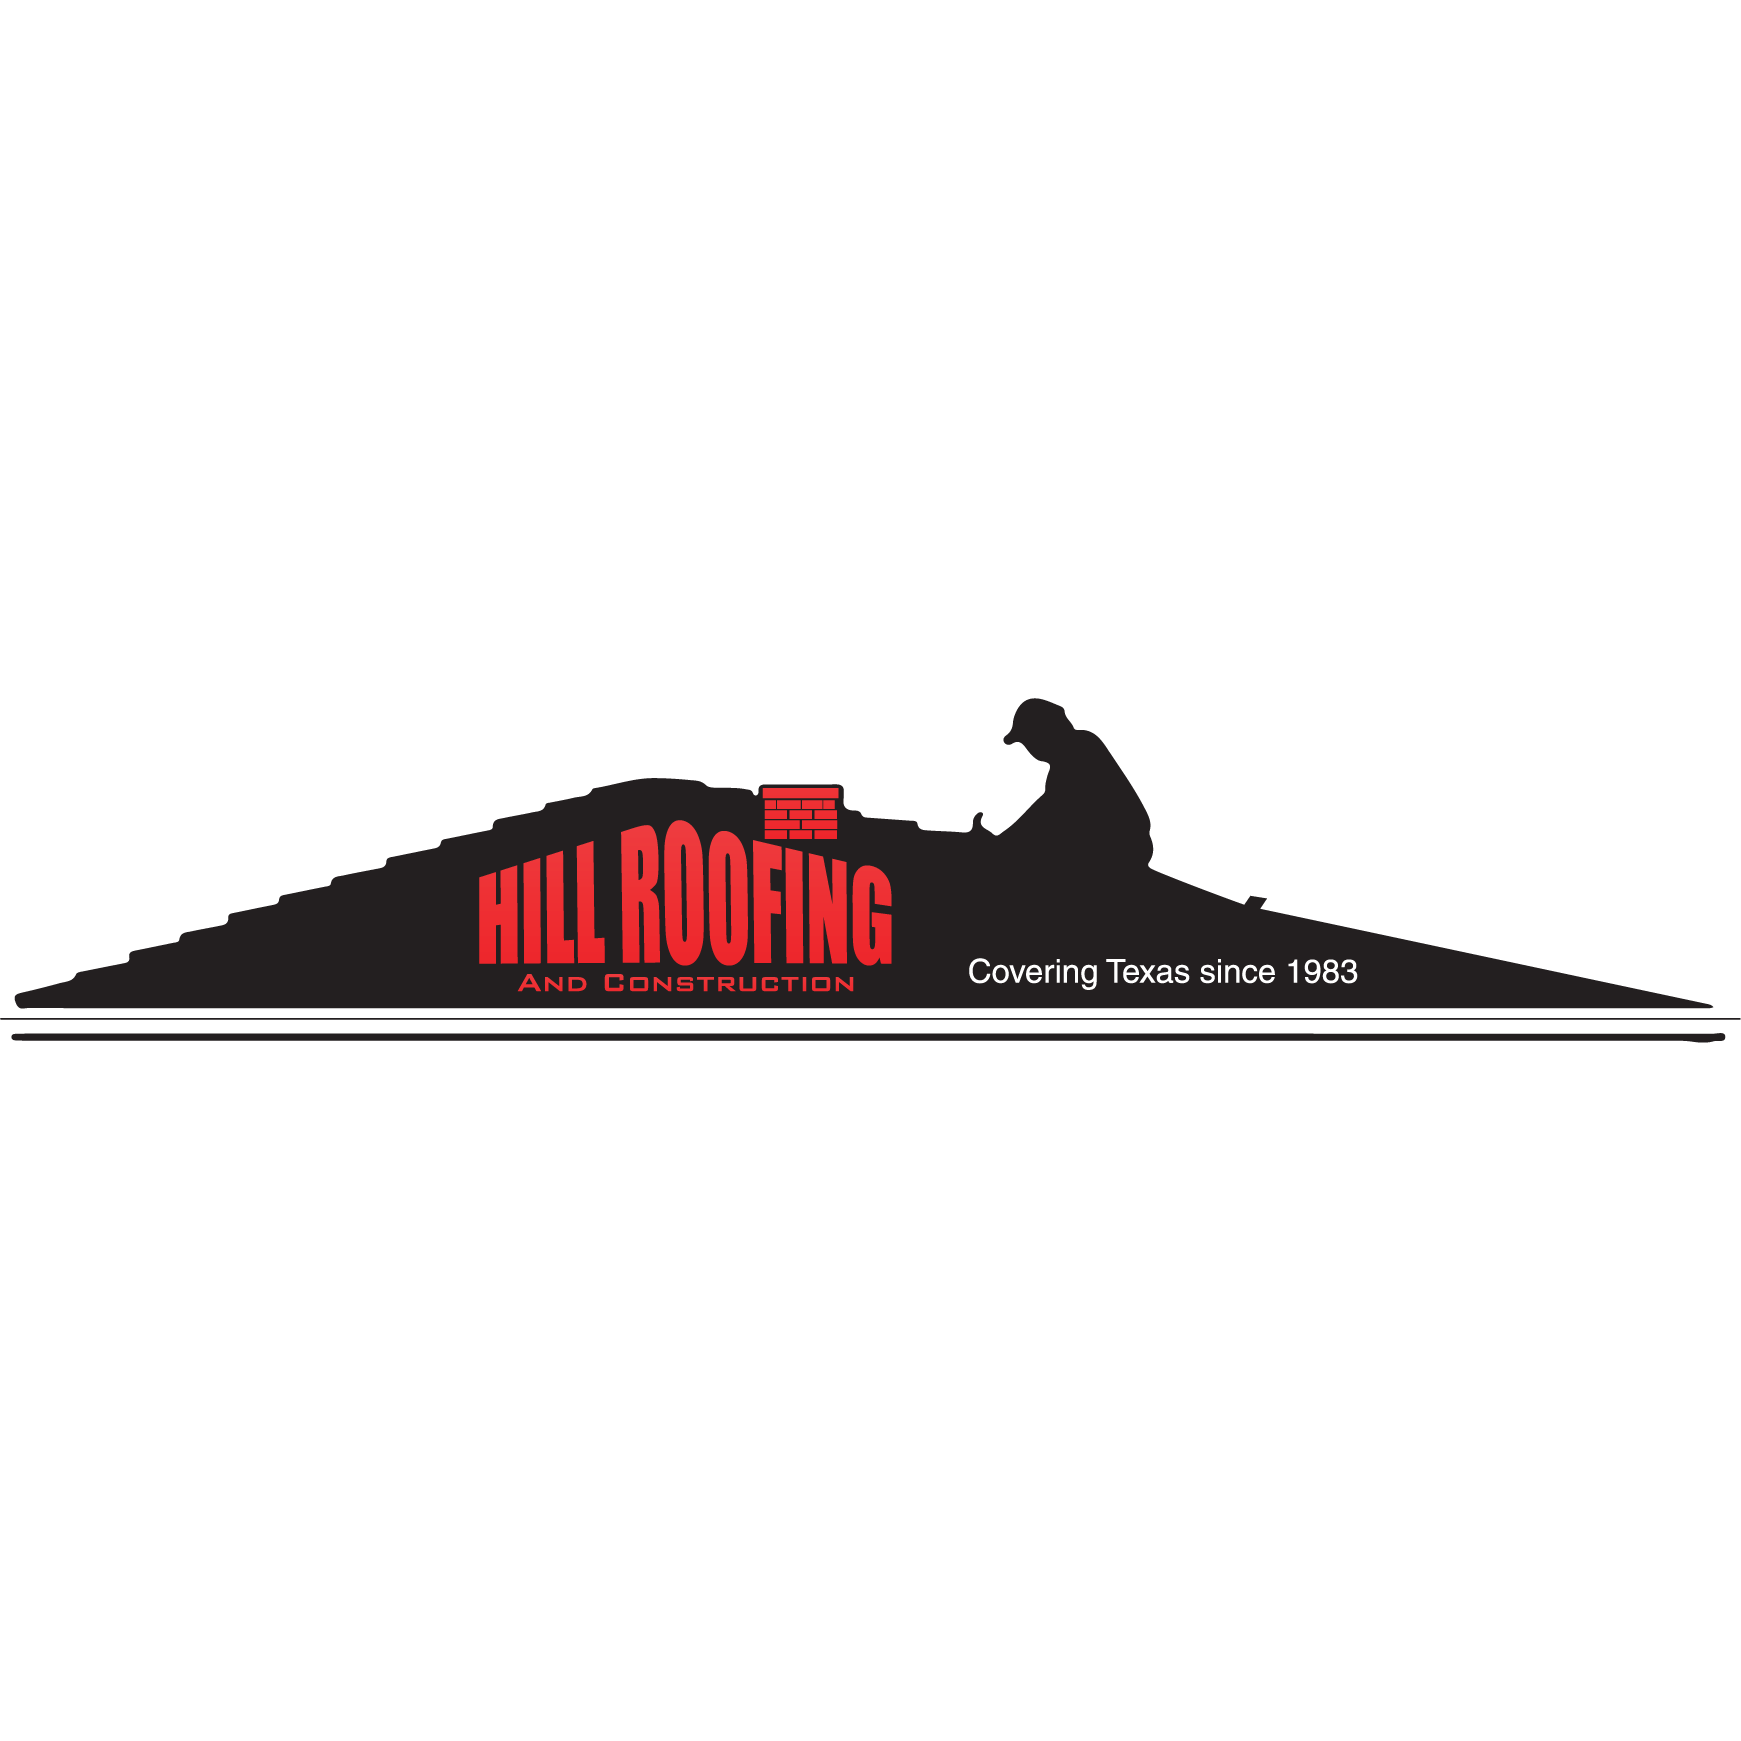 Hill Roofing & Construction